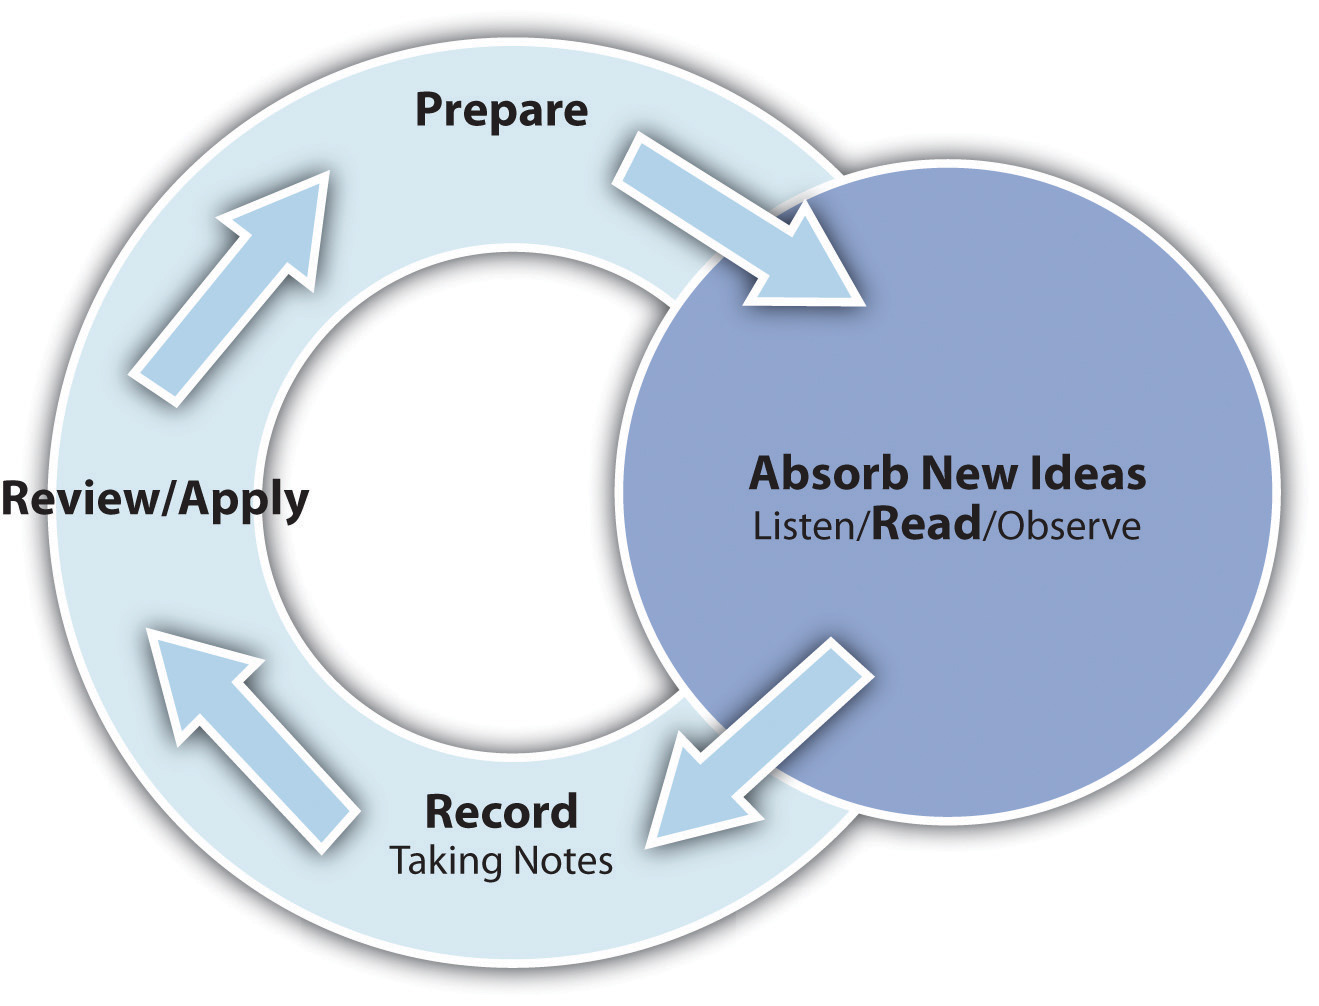 Flowchart or Diagram (Prepare -> Absorb New Ideas (Listen/Read/Observe) -> Record (Taking Notes) -> Review/Apply